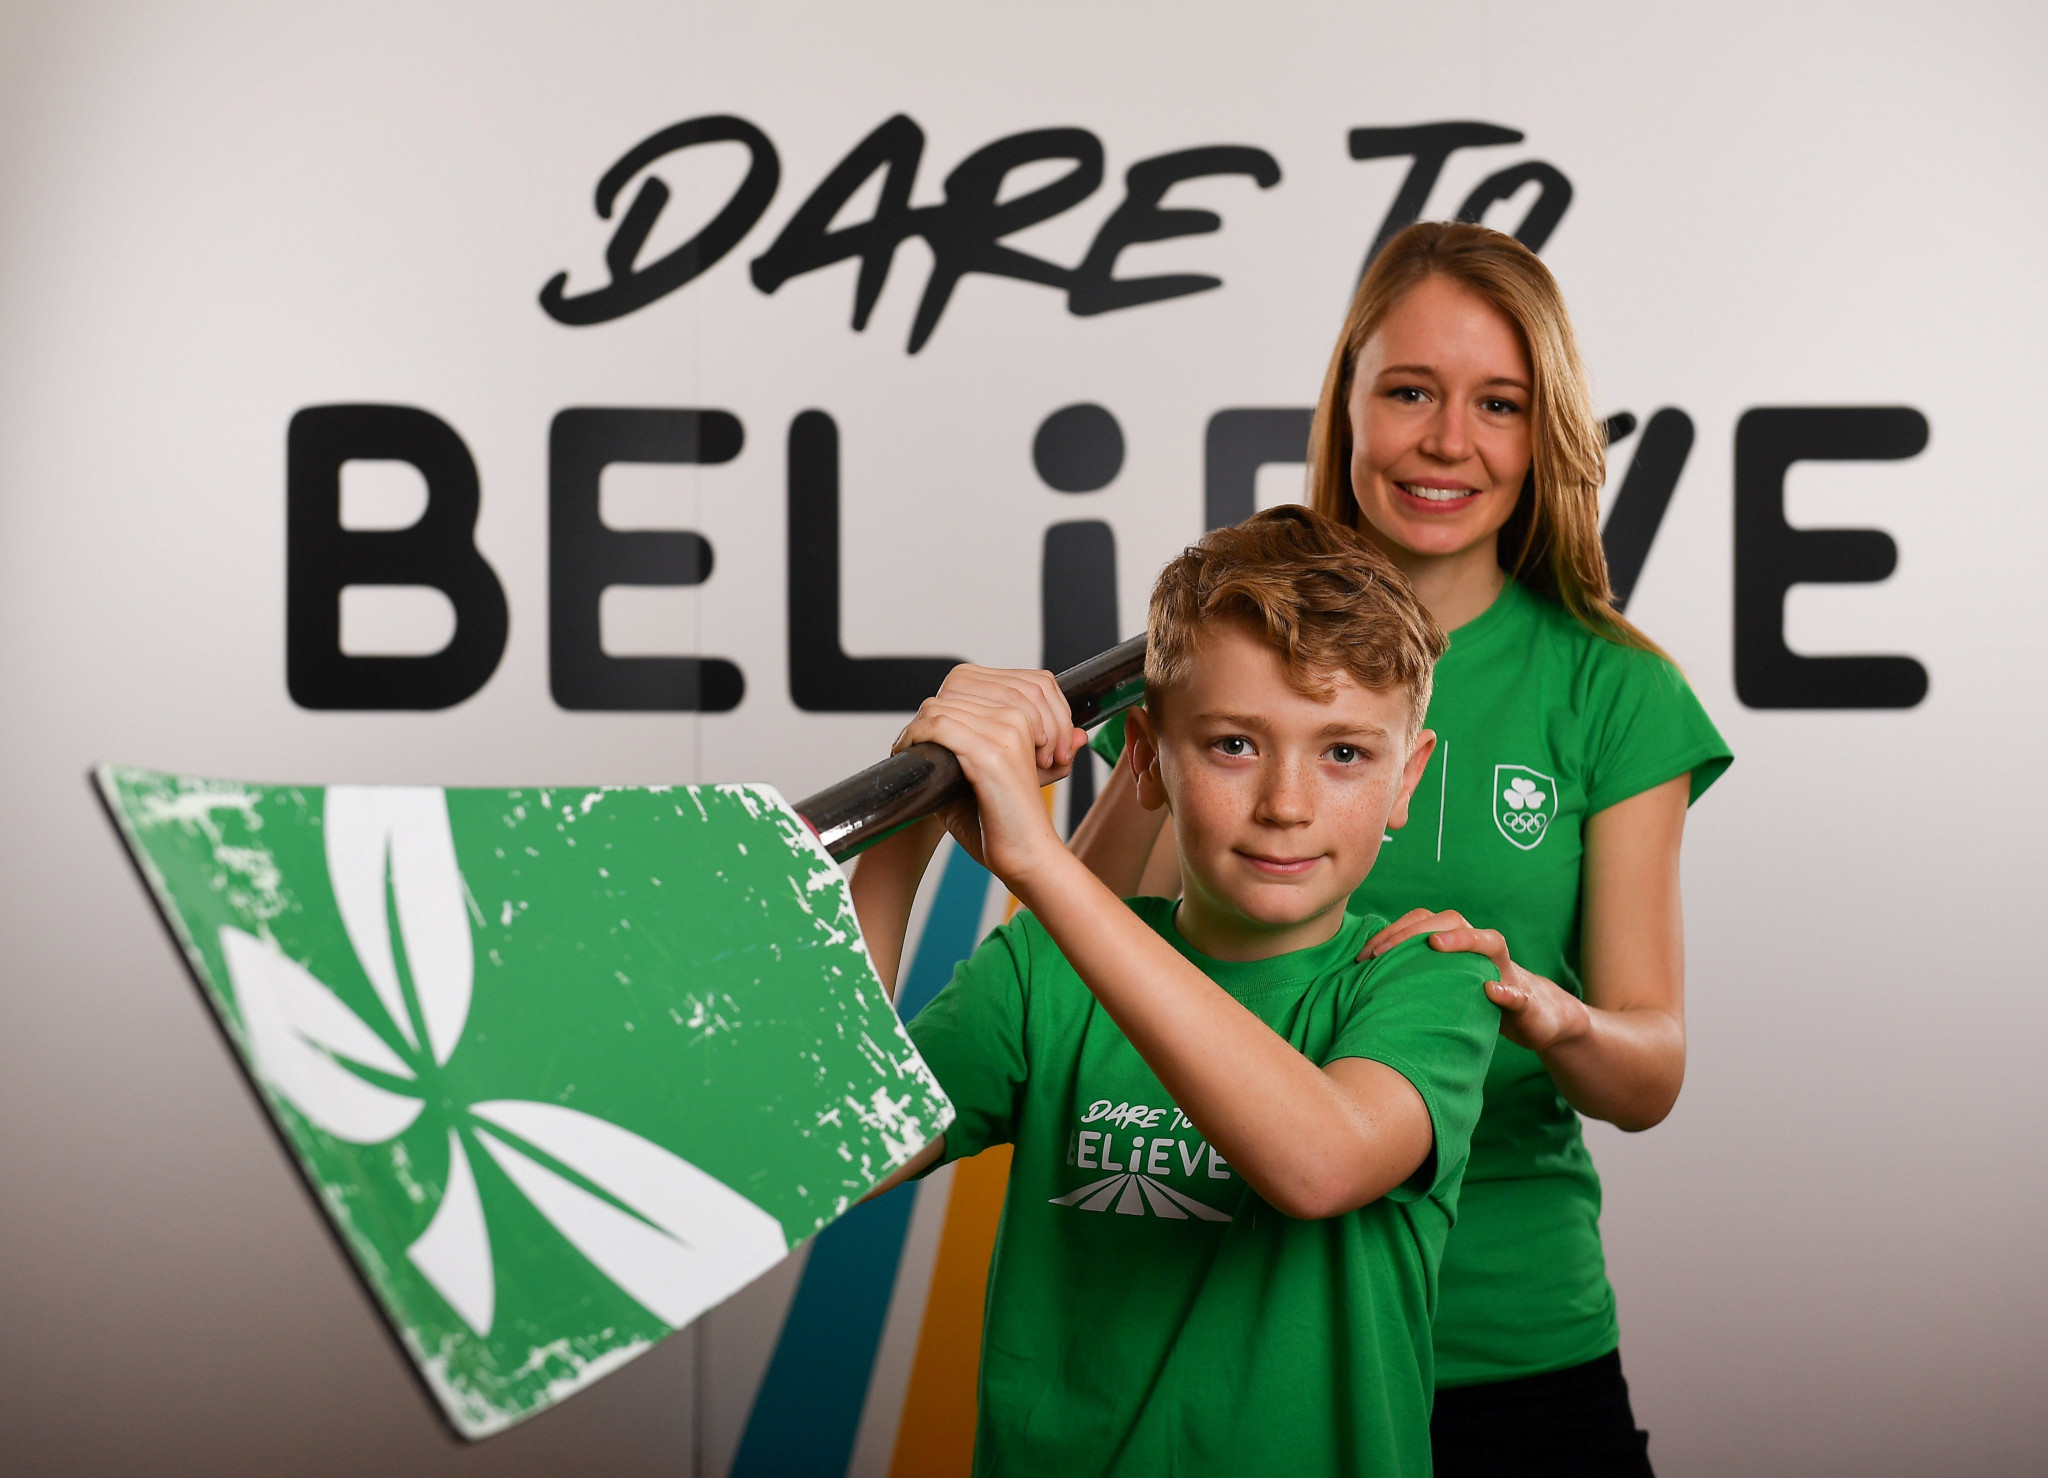 The Olympic Federation of Ireland launched a circuit challenge video as part of their Dare to Believe campaign ©Twitter